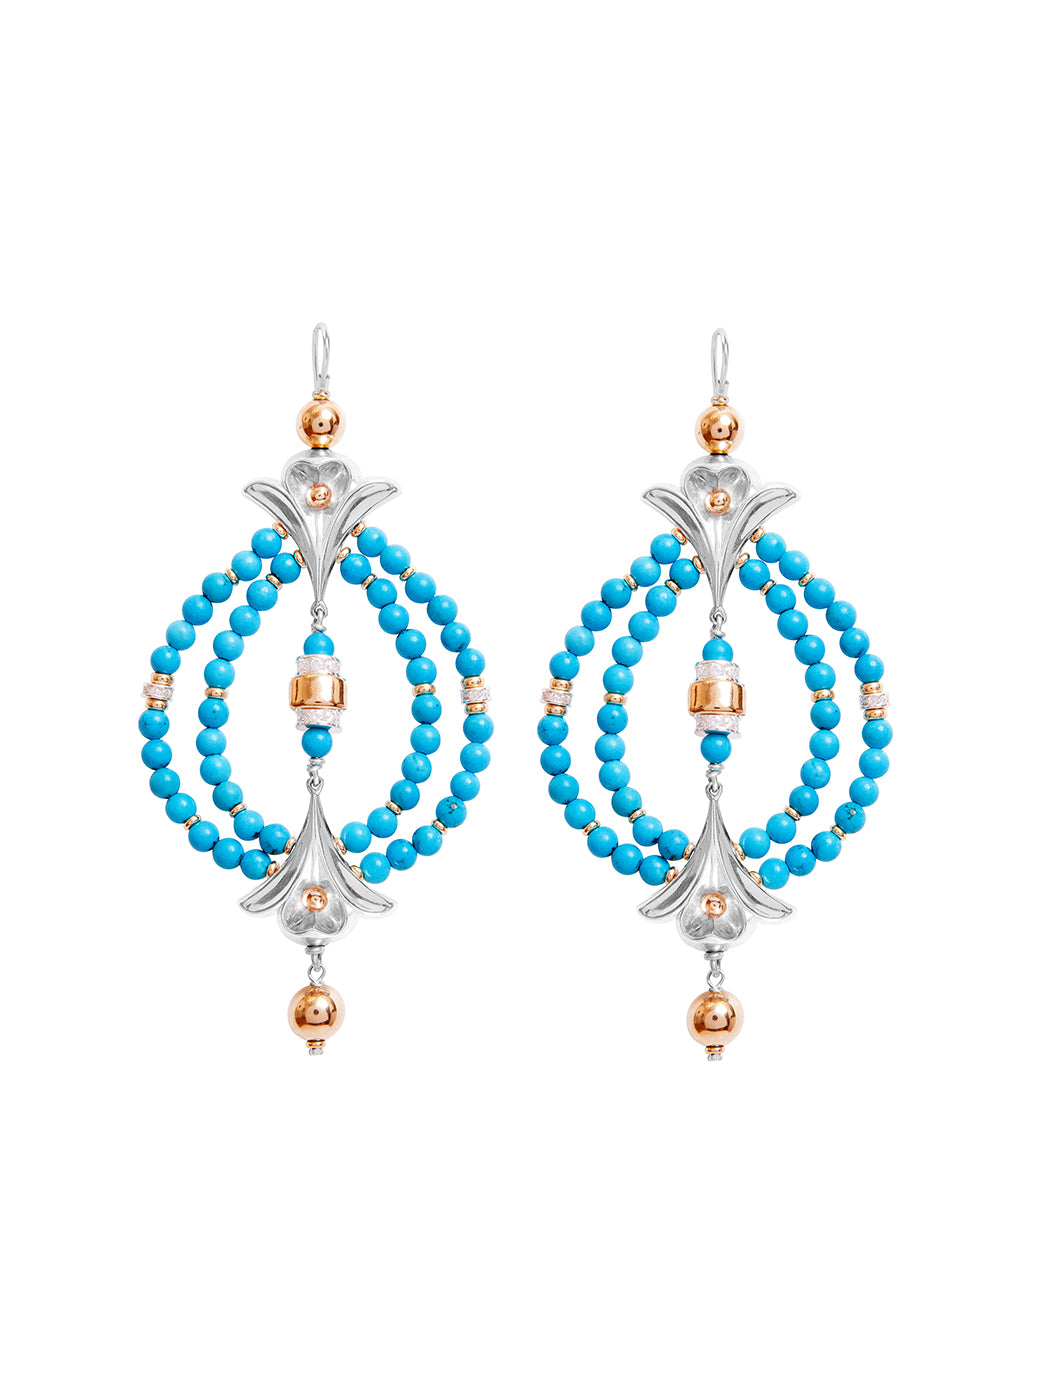 Fiorina Jewellery Lumiere Earrings Turquoise